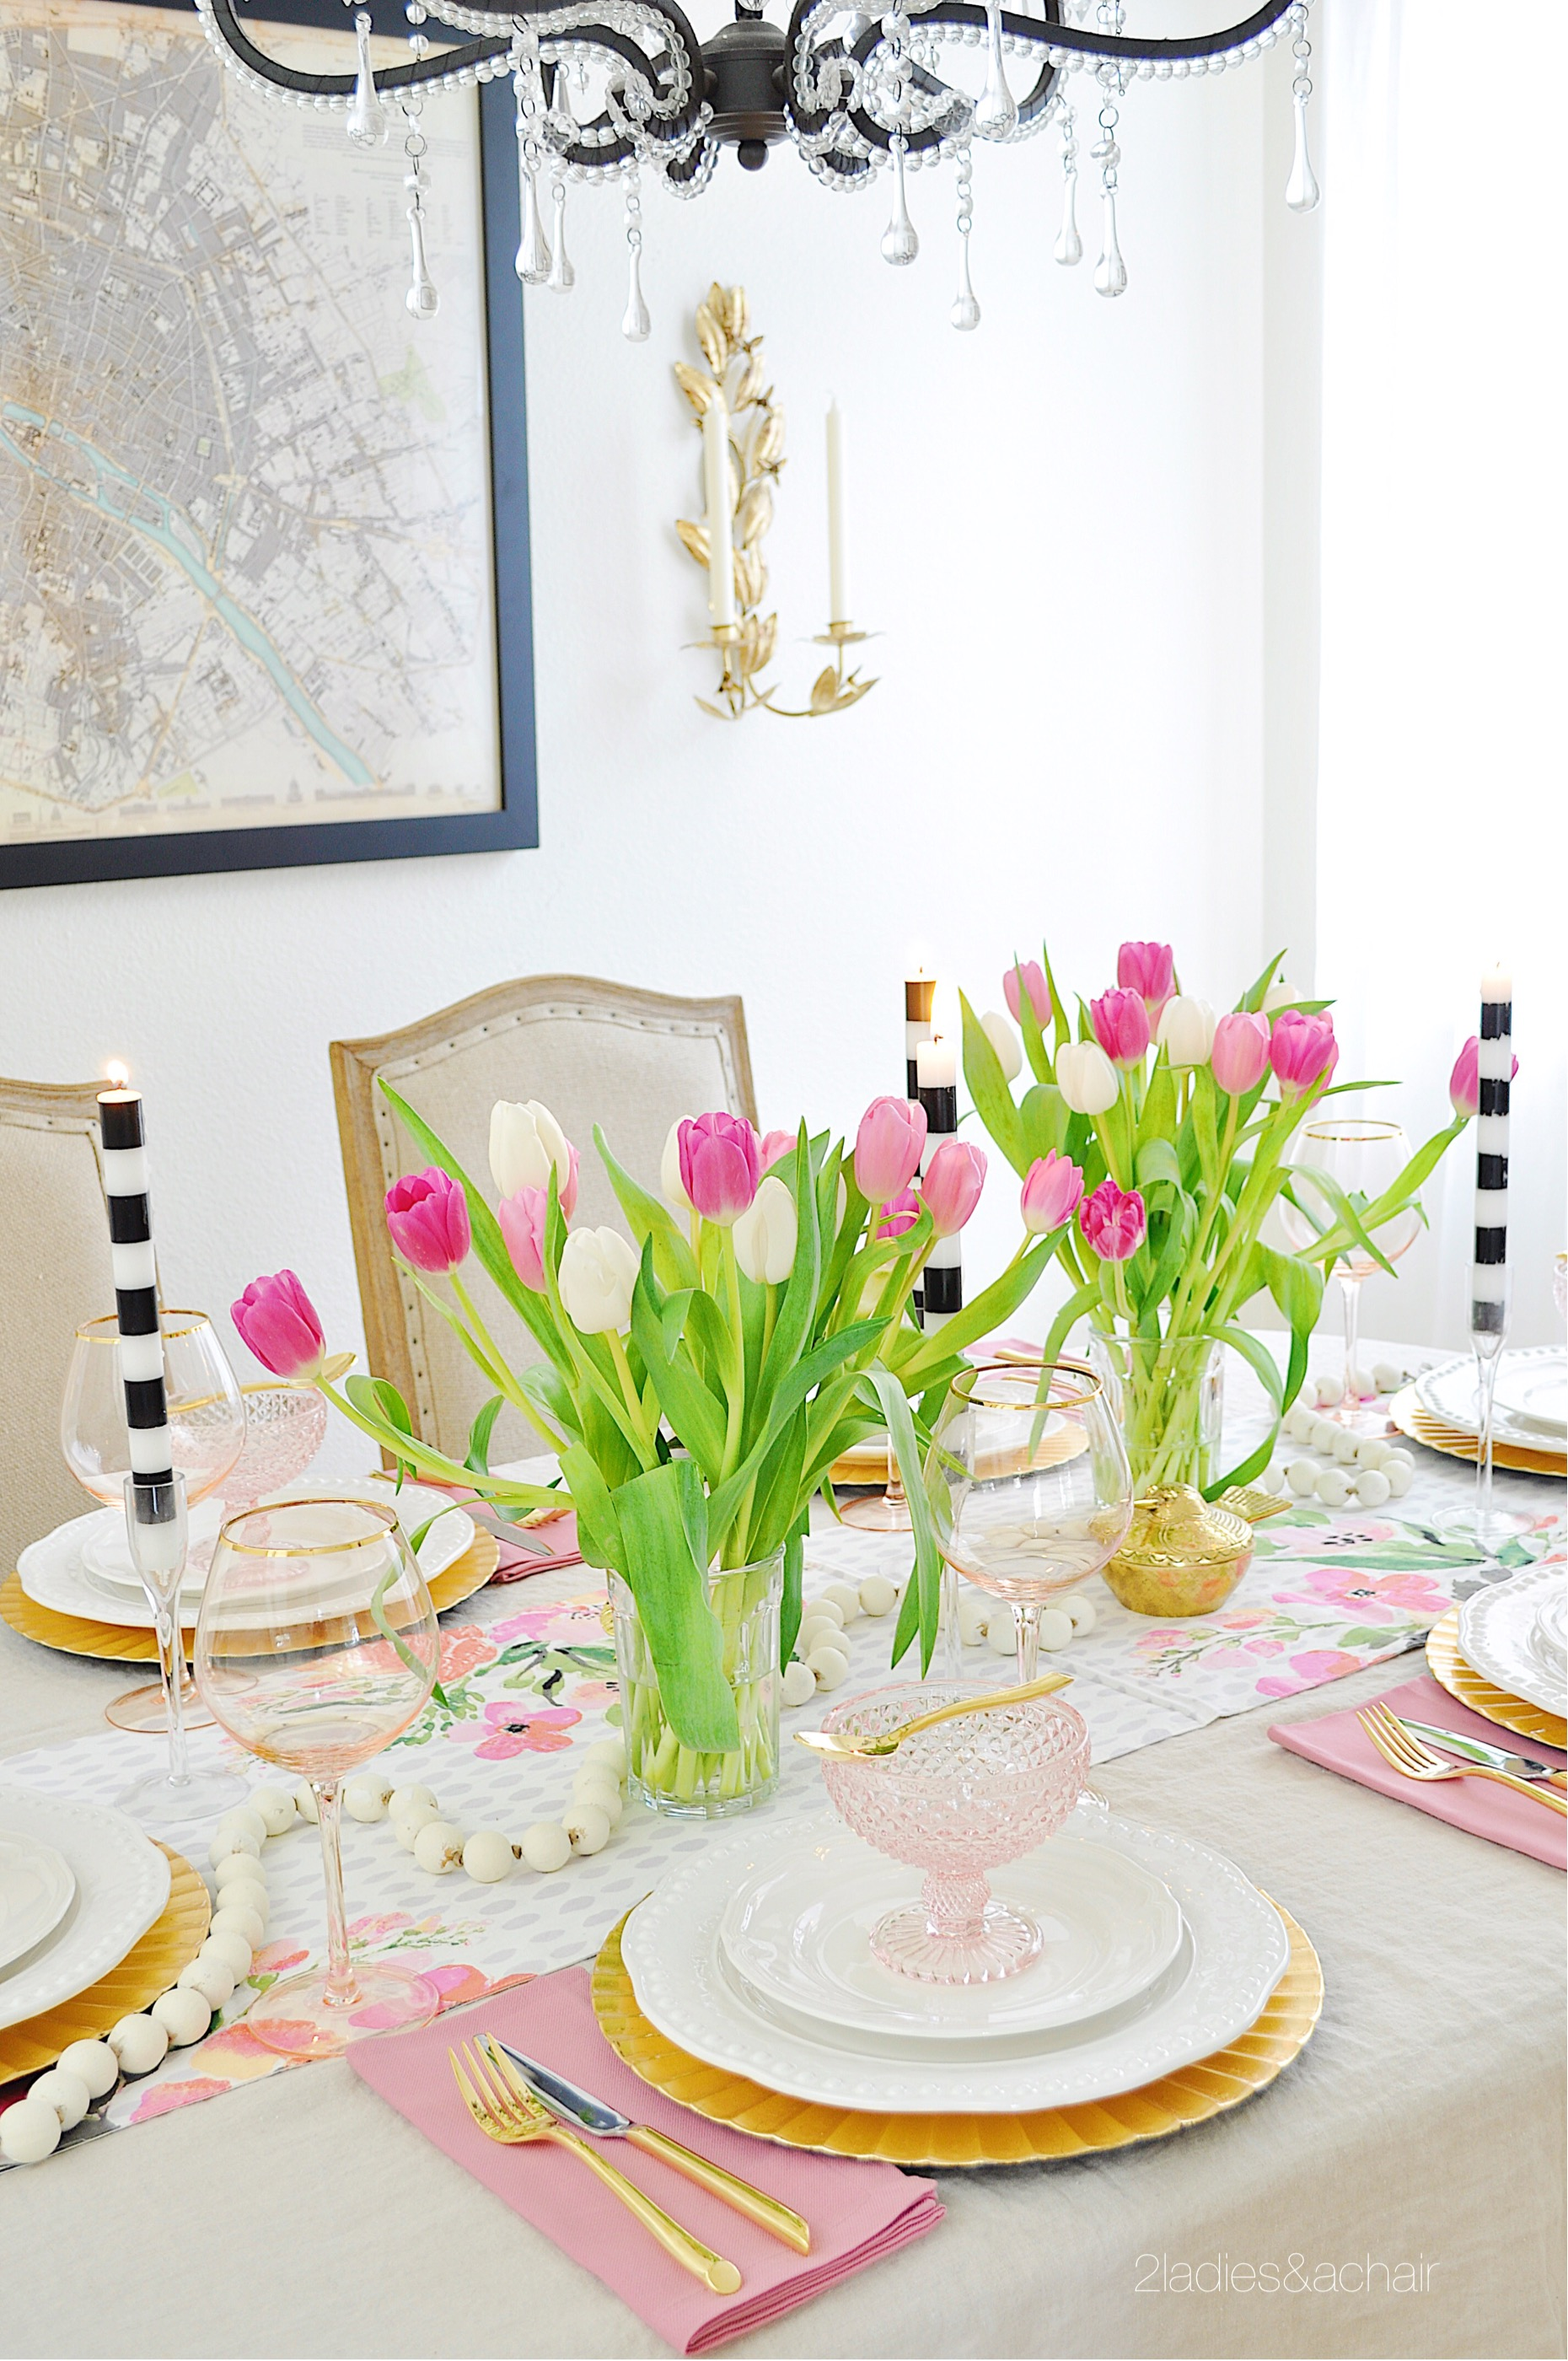 spring tablescape decor IMG_1939.JPG